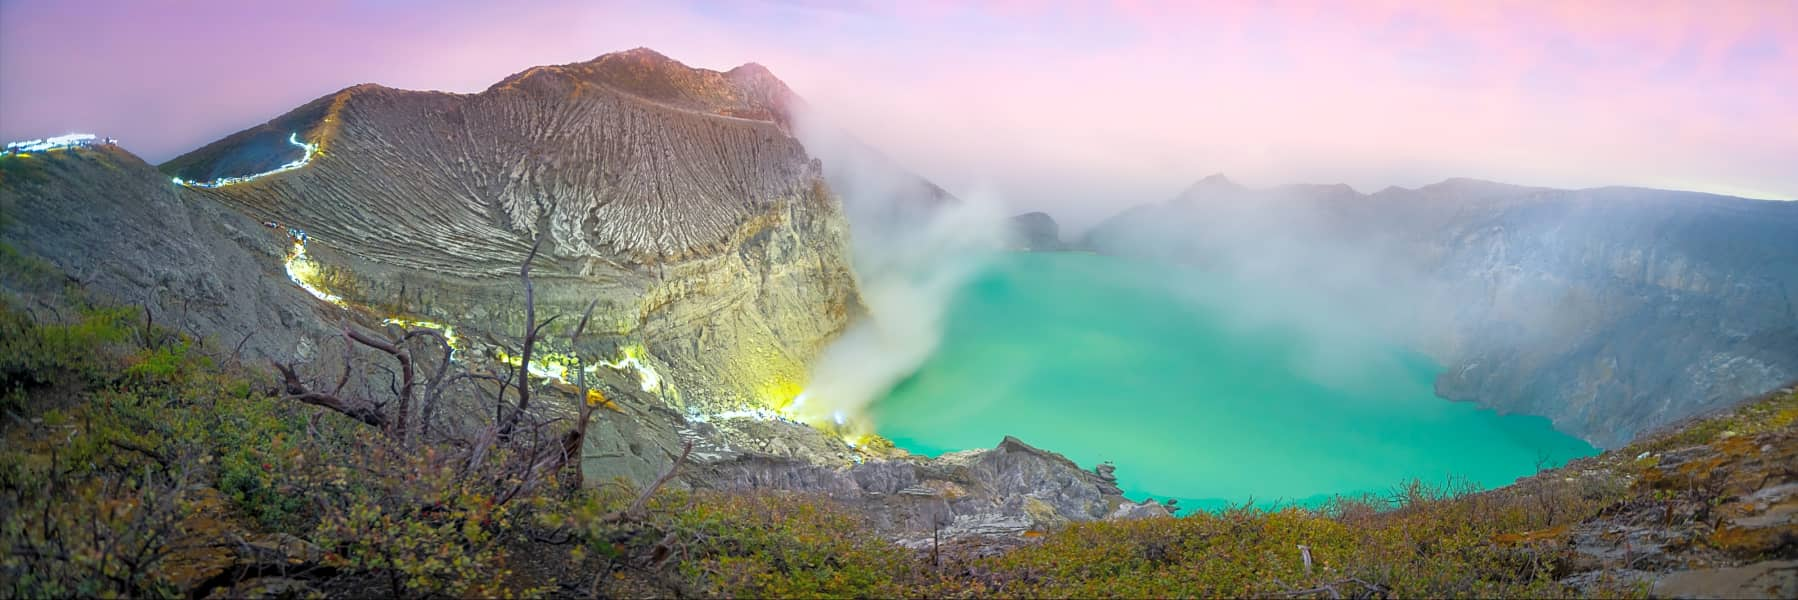 Mount Ijen Crater Volcano Midnight Trekking Tour from Bali – Full Day gallery